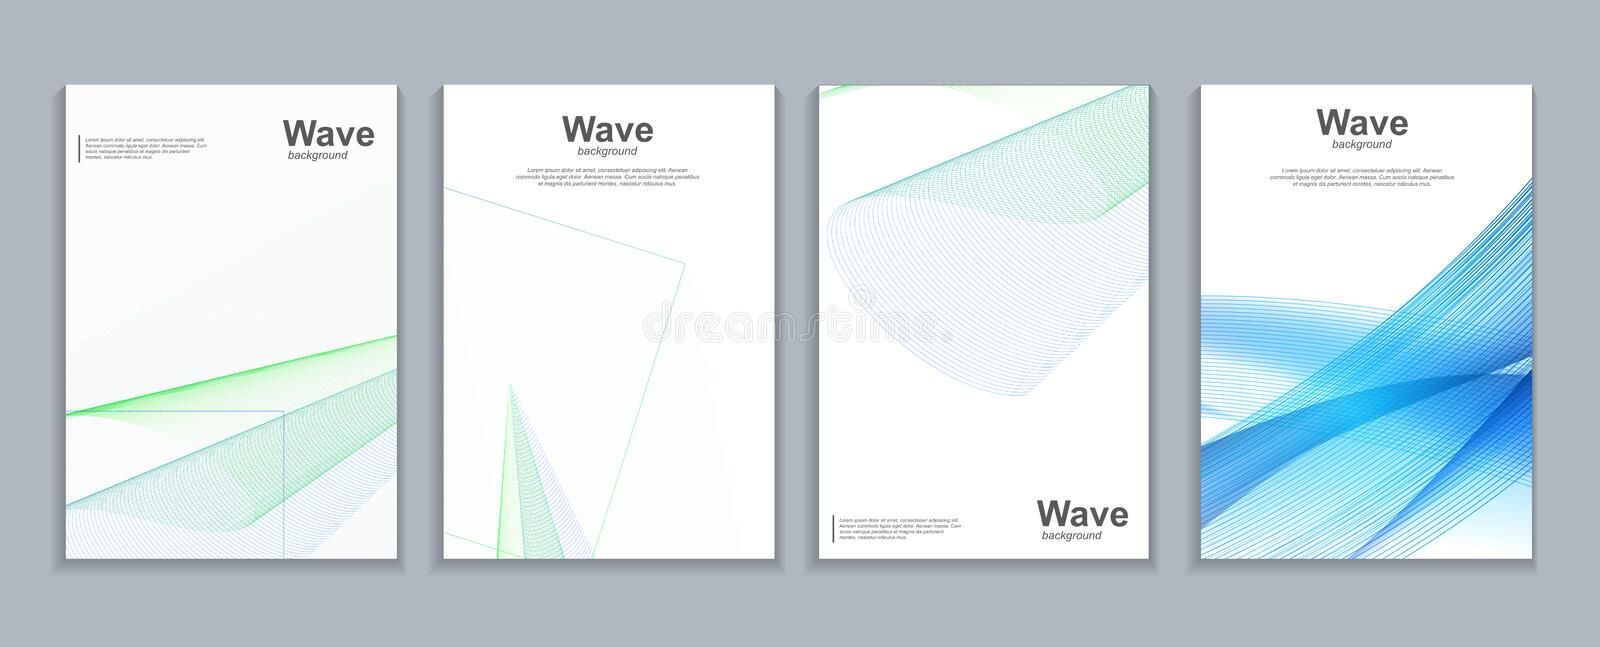 Simple Minimal Covers Abstract 3d Meshes Template Design. Future Geometric Pattern. Vector Illustration. EPS10 vector illustration